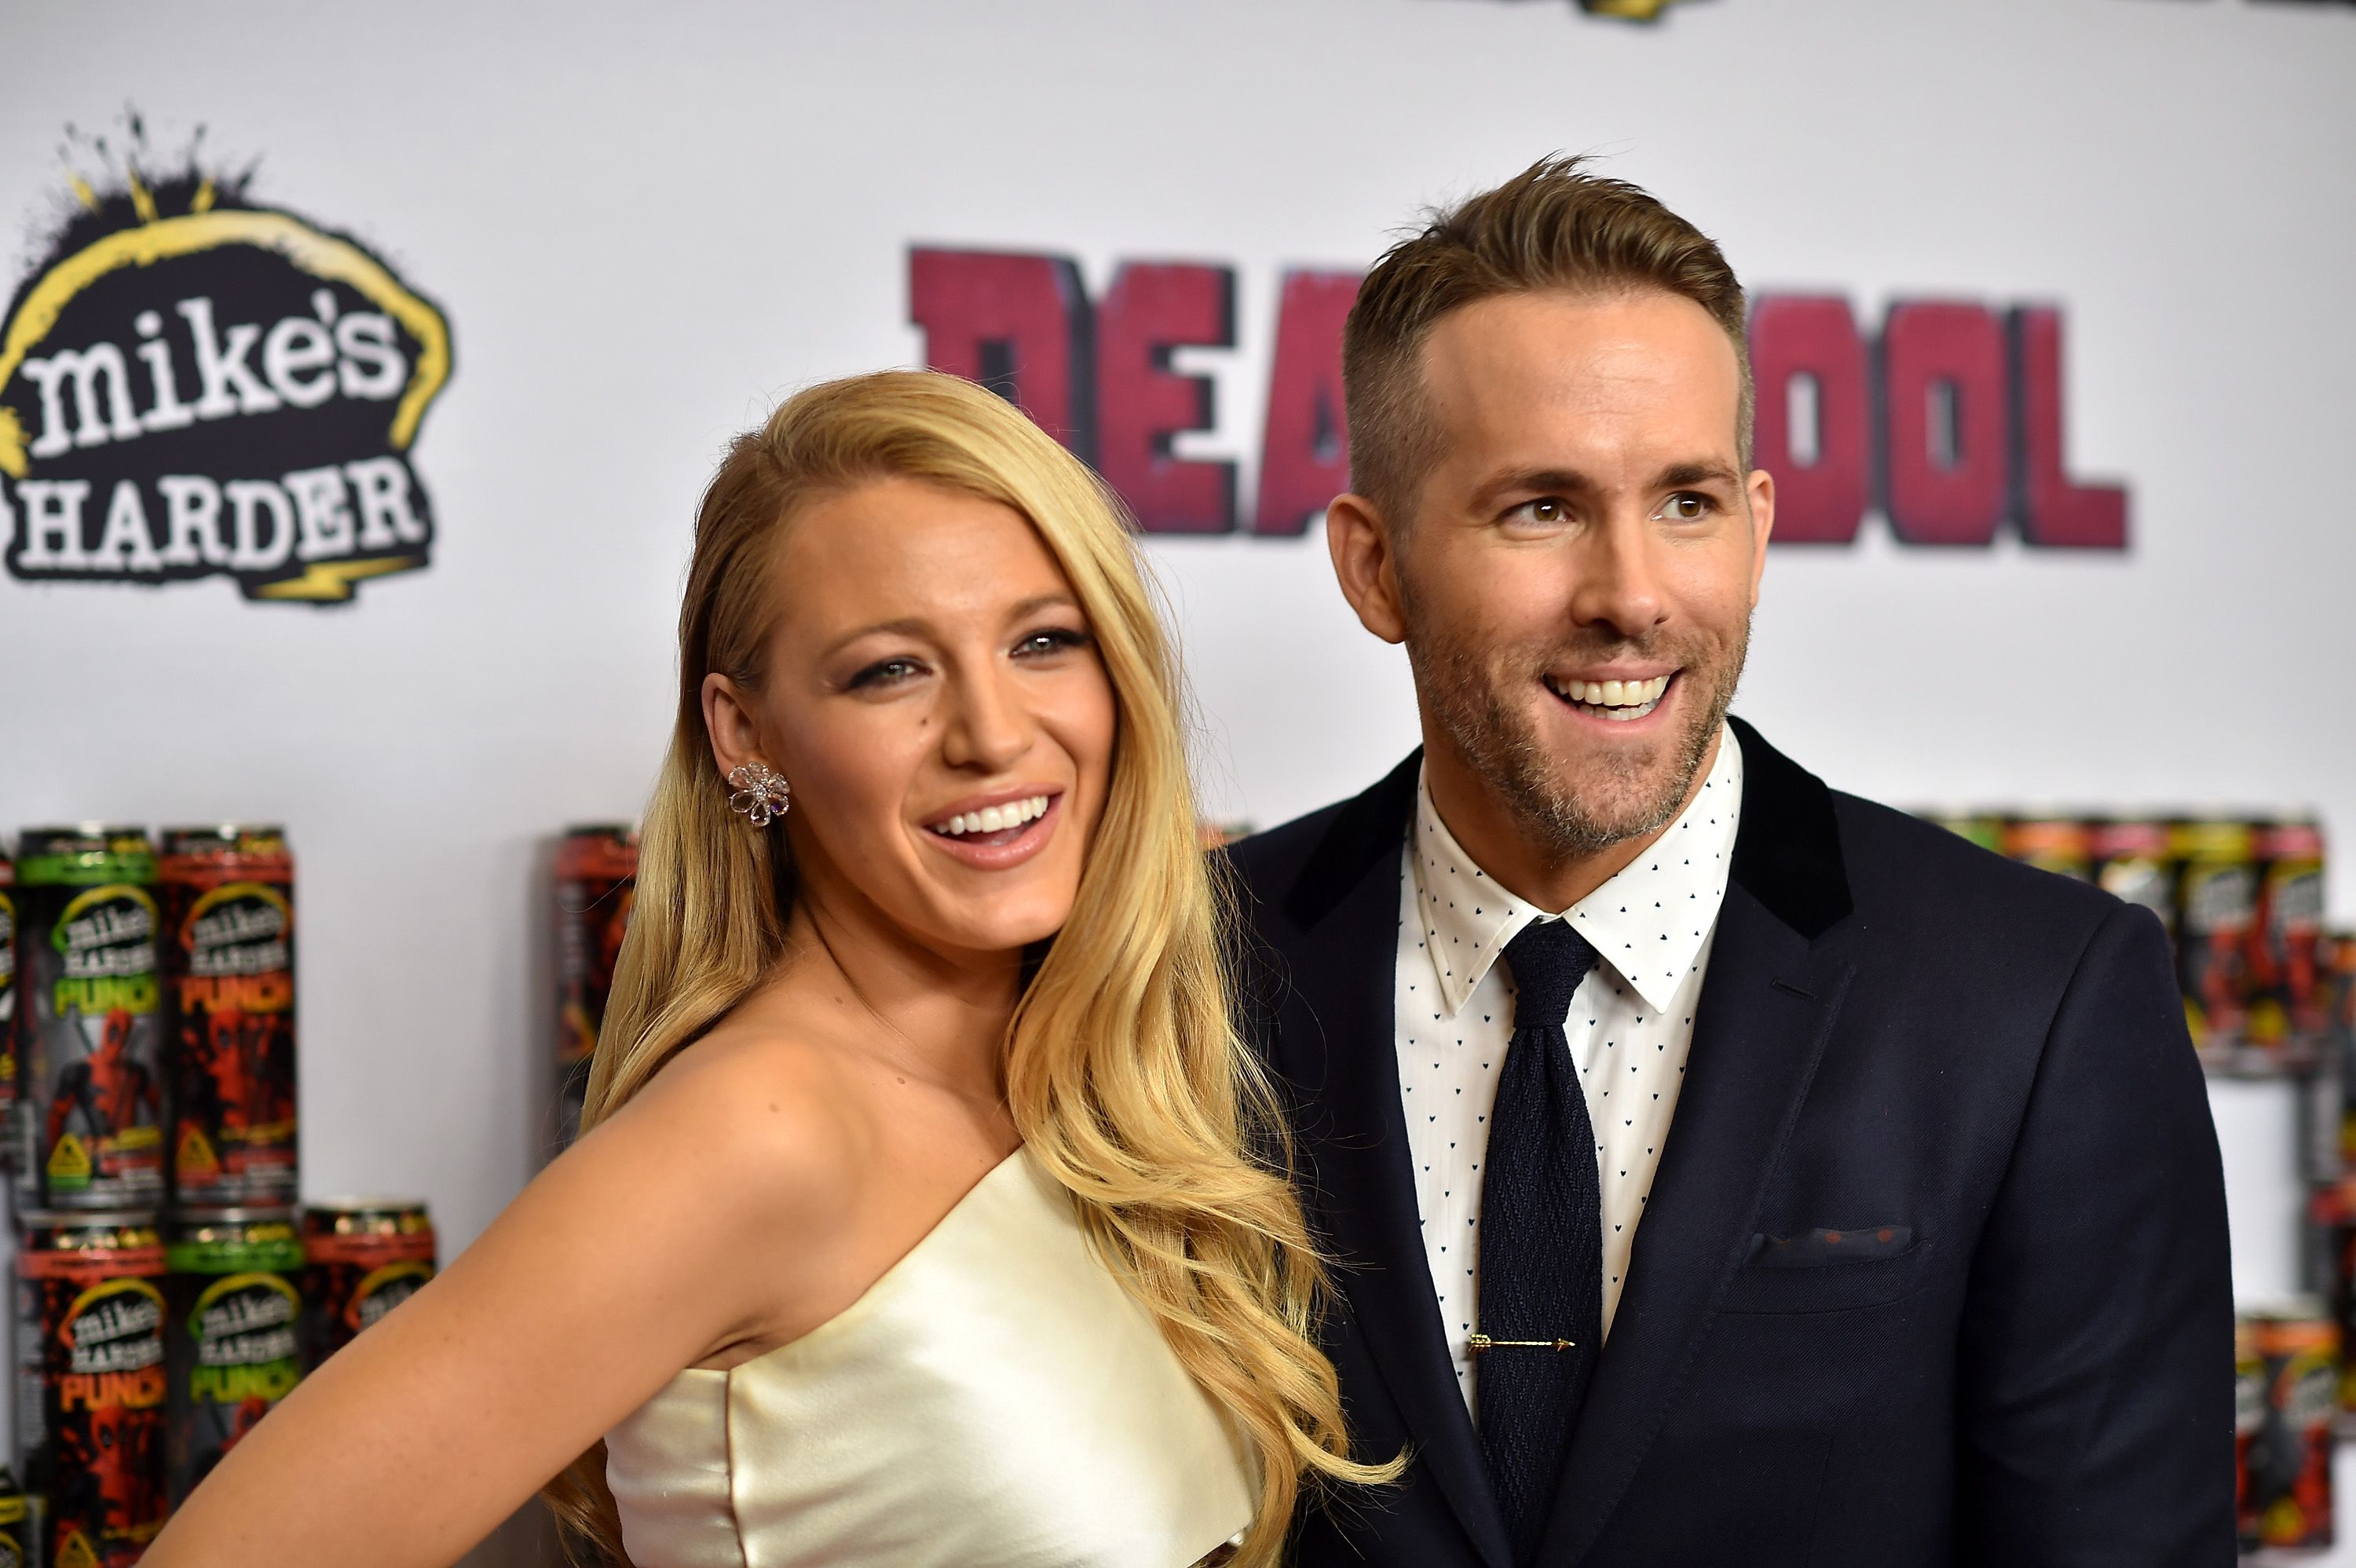 Ryan Reynolds Made Blake Lively a Glue Cake for Valentines Day